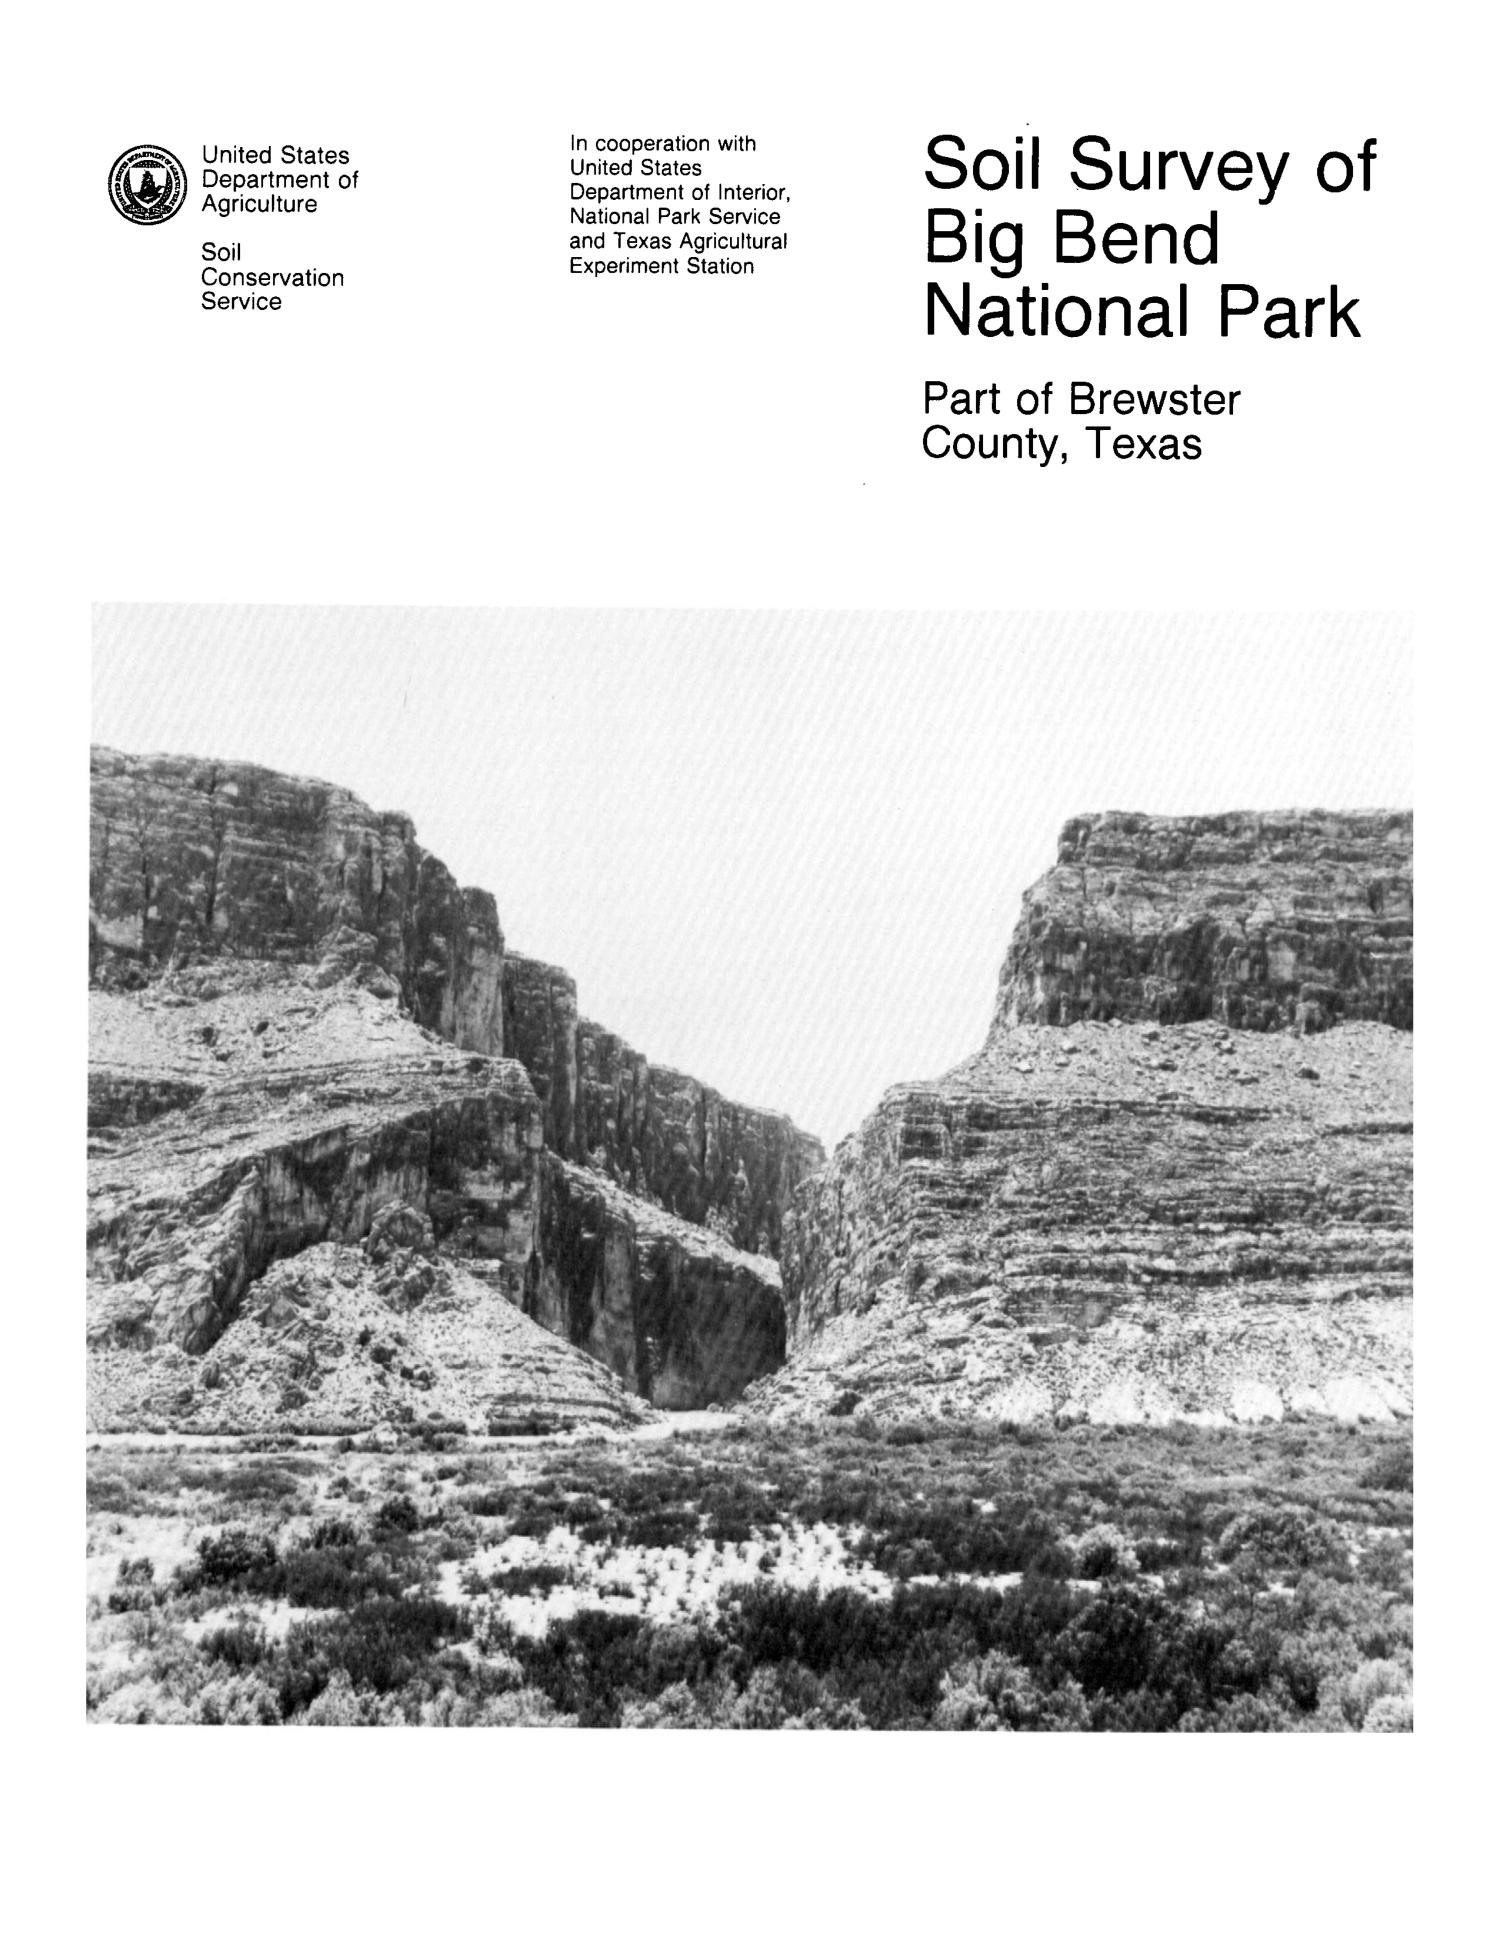 a history and overview of the big bend national park The big bend of the rio grande a guide to the rocks, landscape, geologic history, and settlers of the area of big bend national park austin, university of texas, 1968 austin, university of texas, 1968.